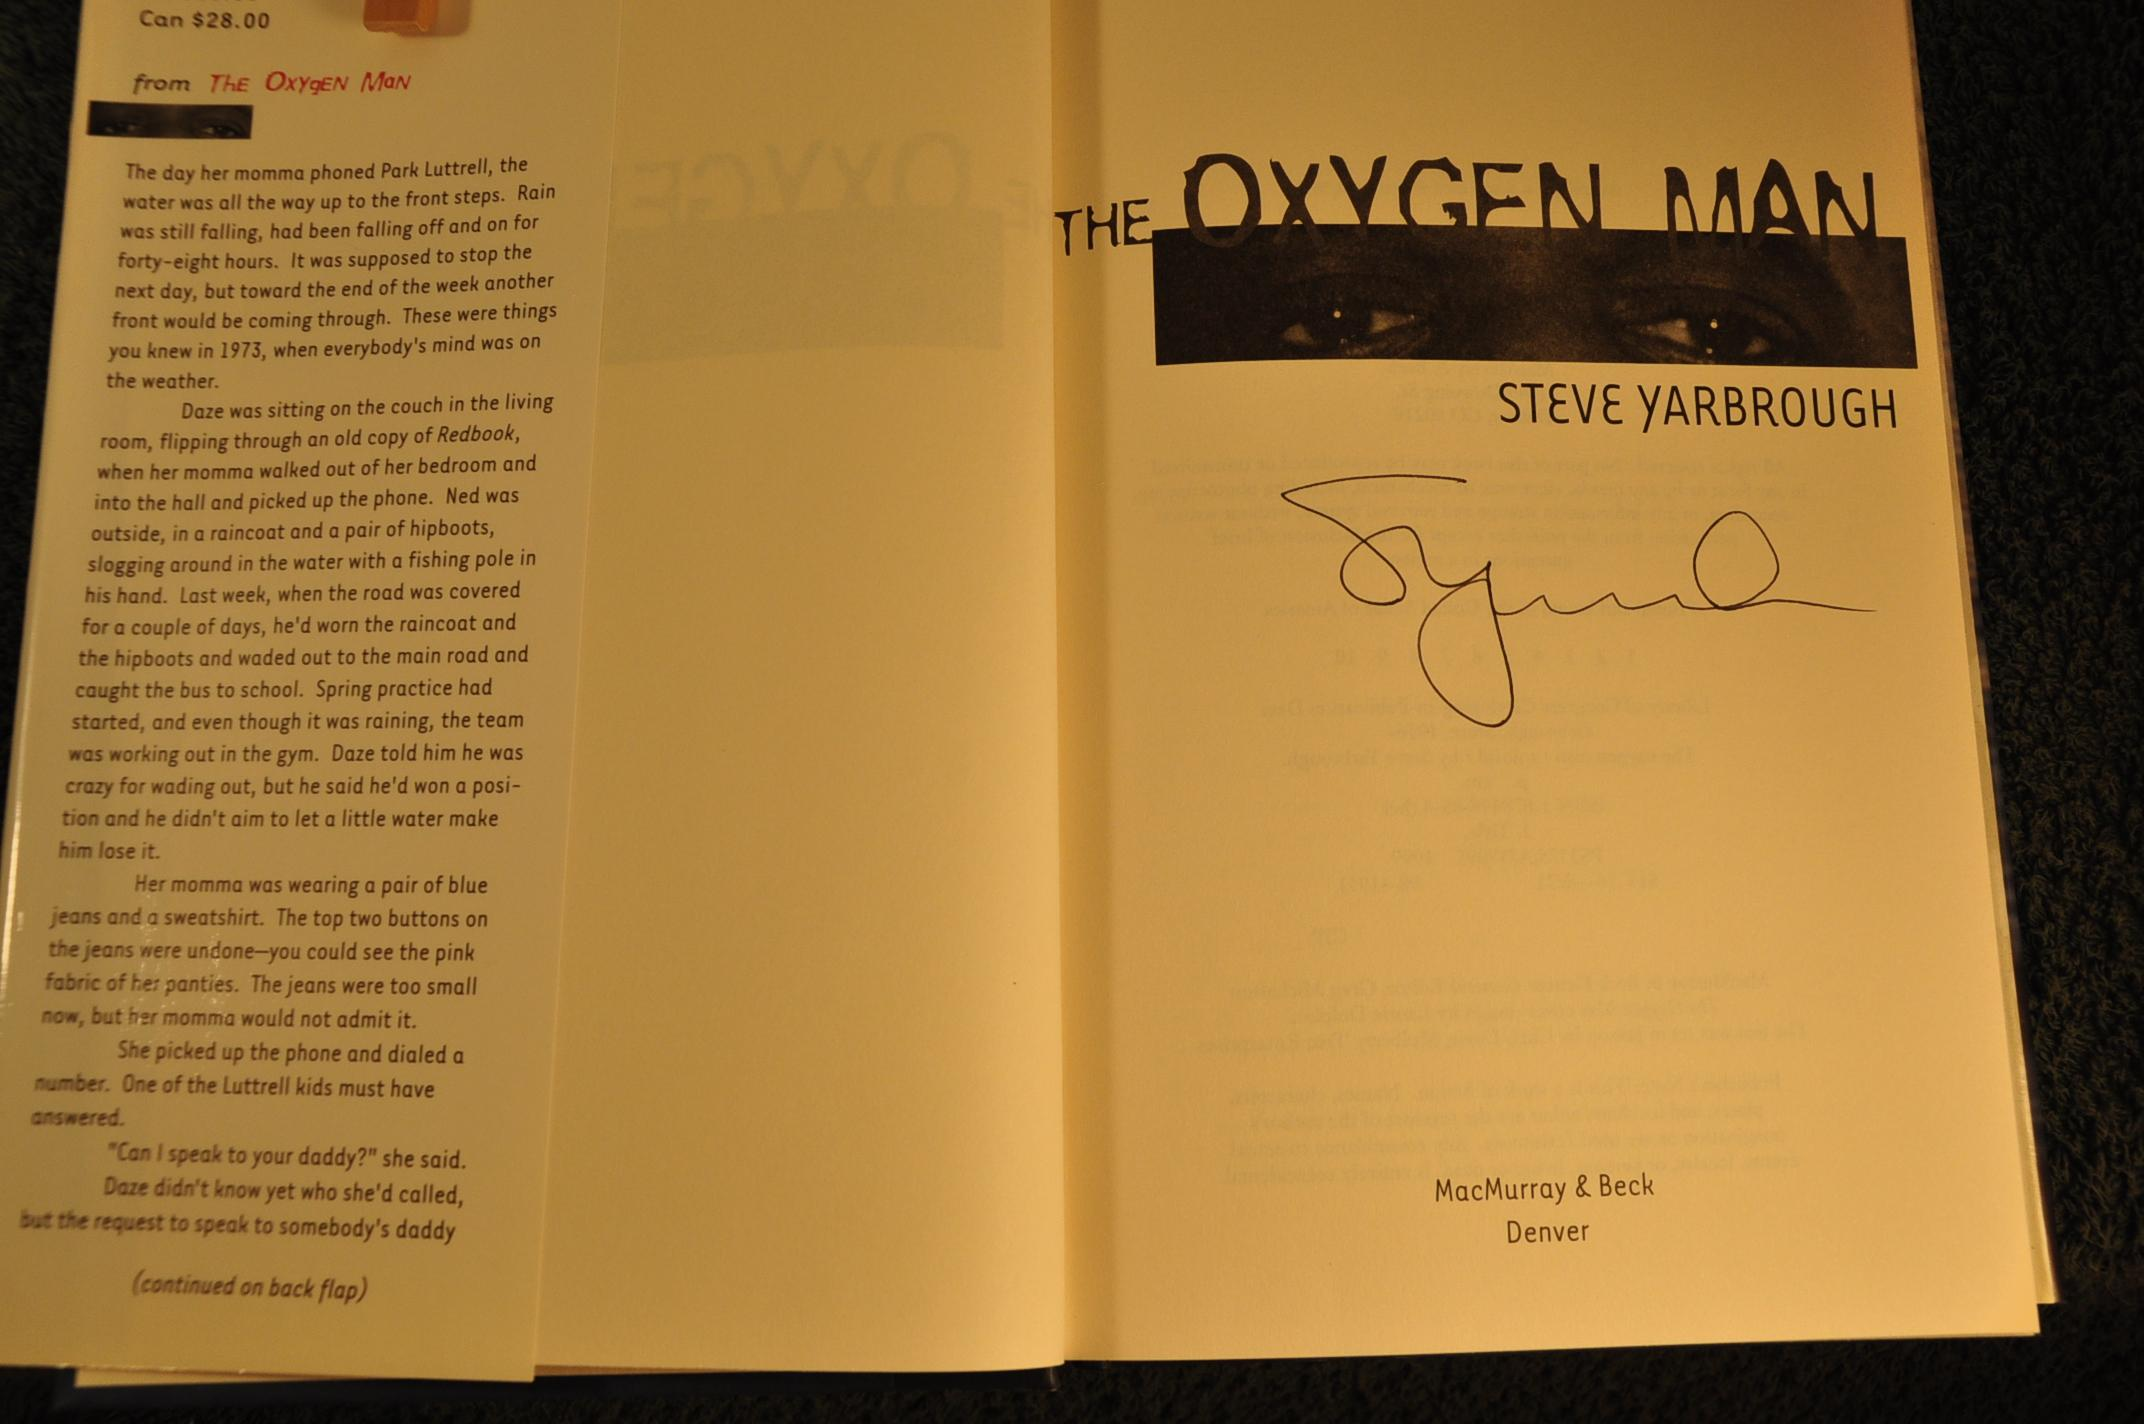 The Oxygen Man **SIGNED** - Yarbrough, Steve